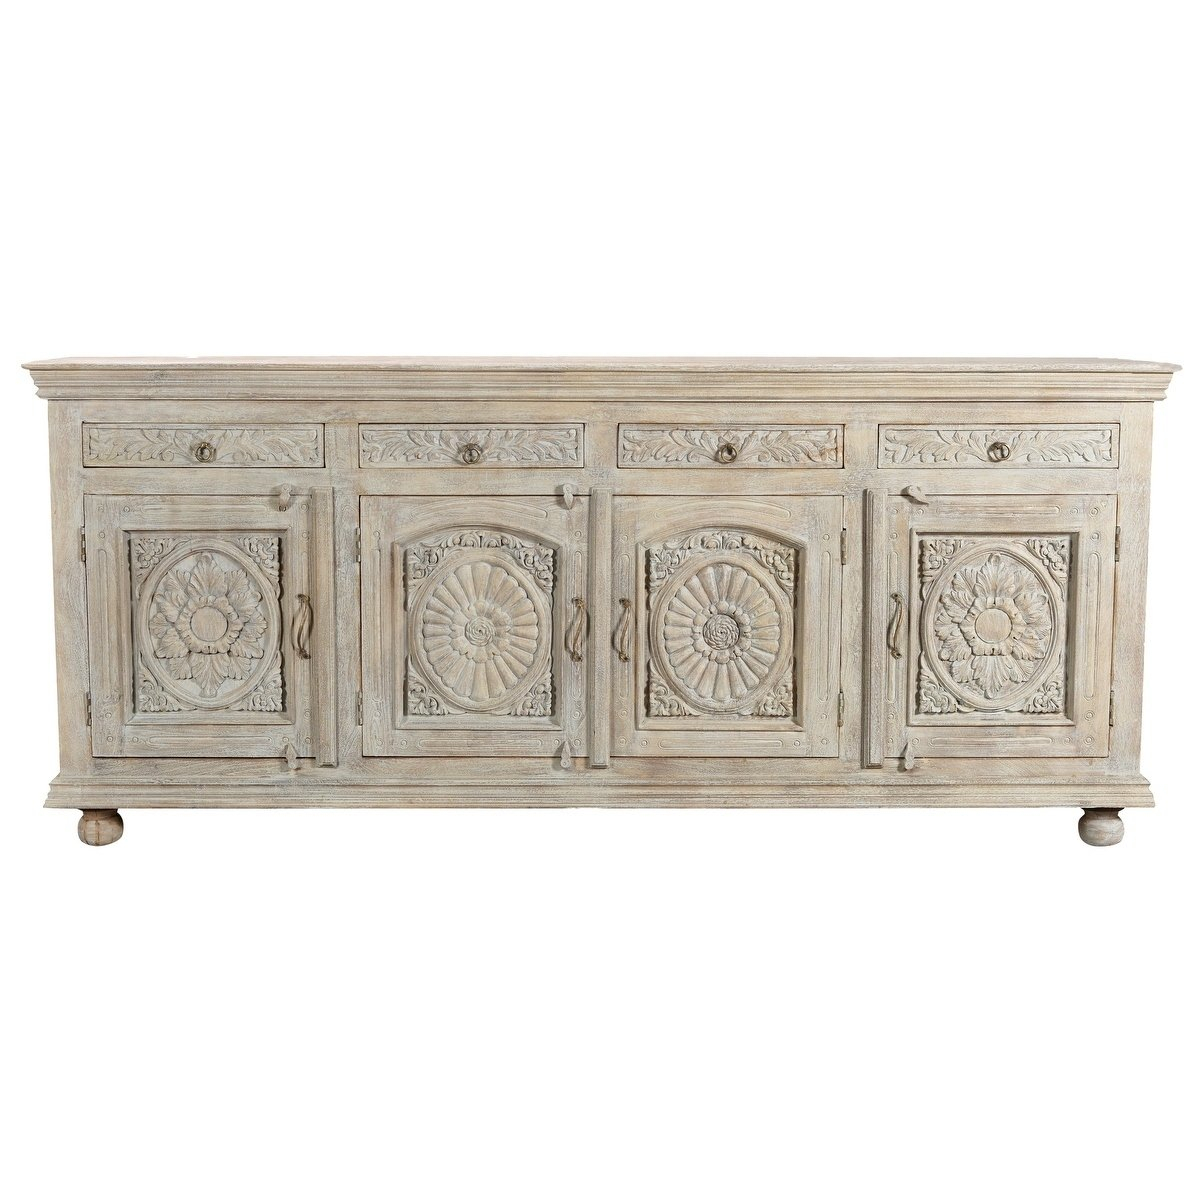 Aria Collection – 4 Drawer 4 Door Carved Sideboard, White Pertaining To Steinhatchee Reclaimed Pine 4 Door Sideboards (View 7 of 30)